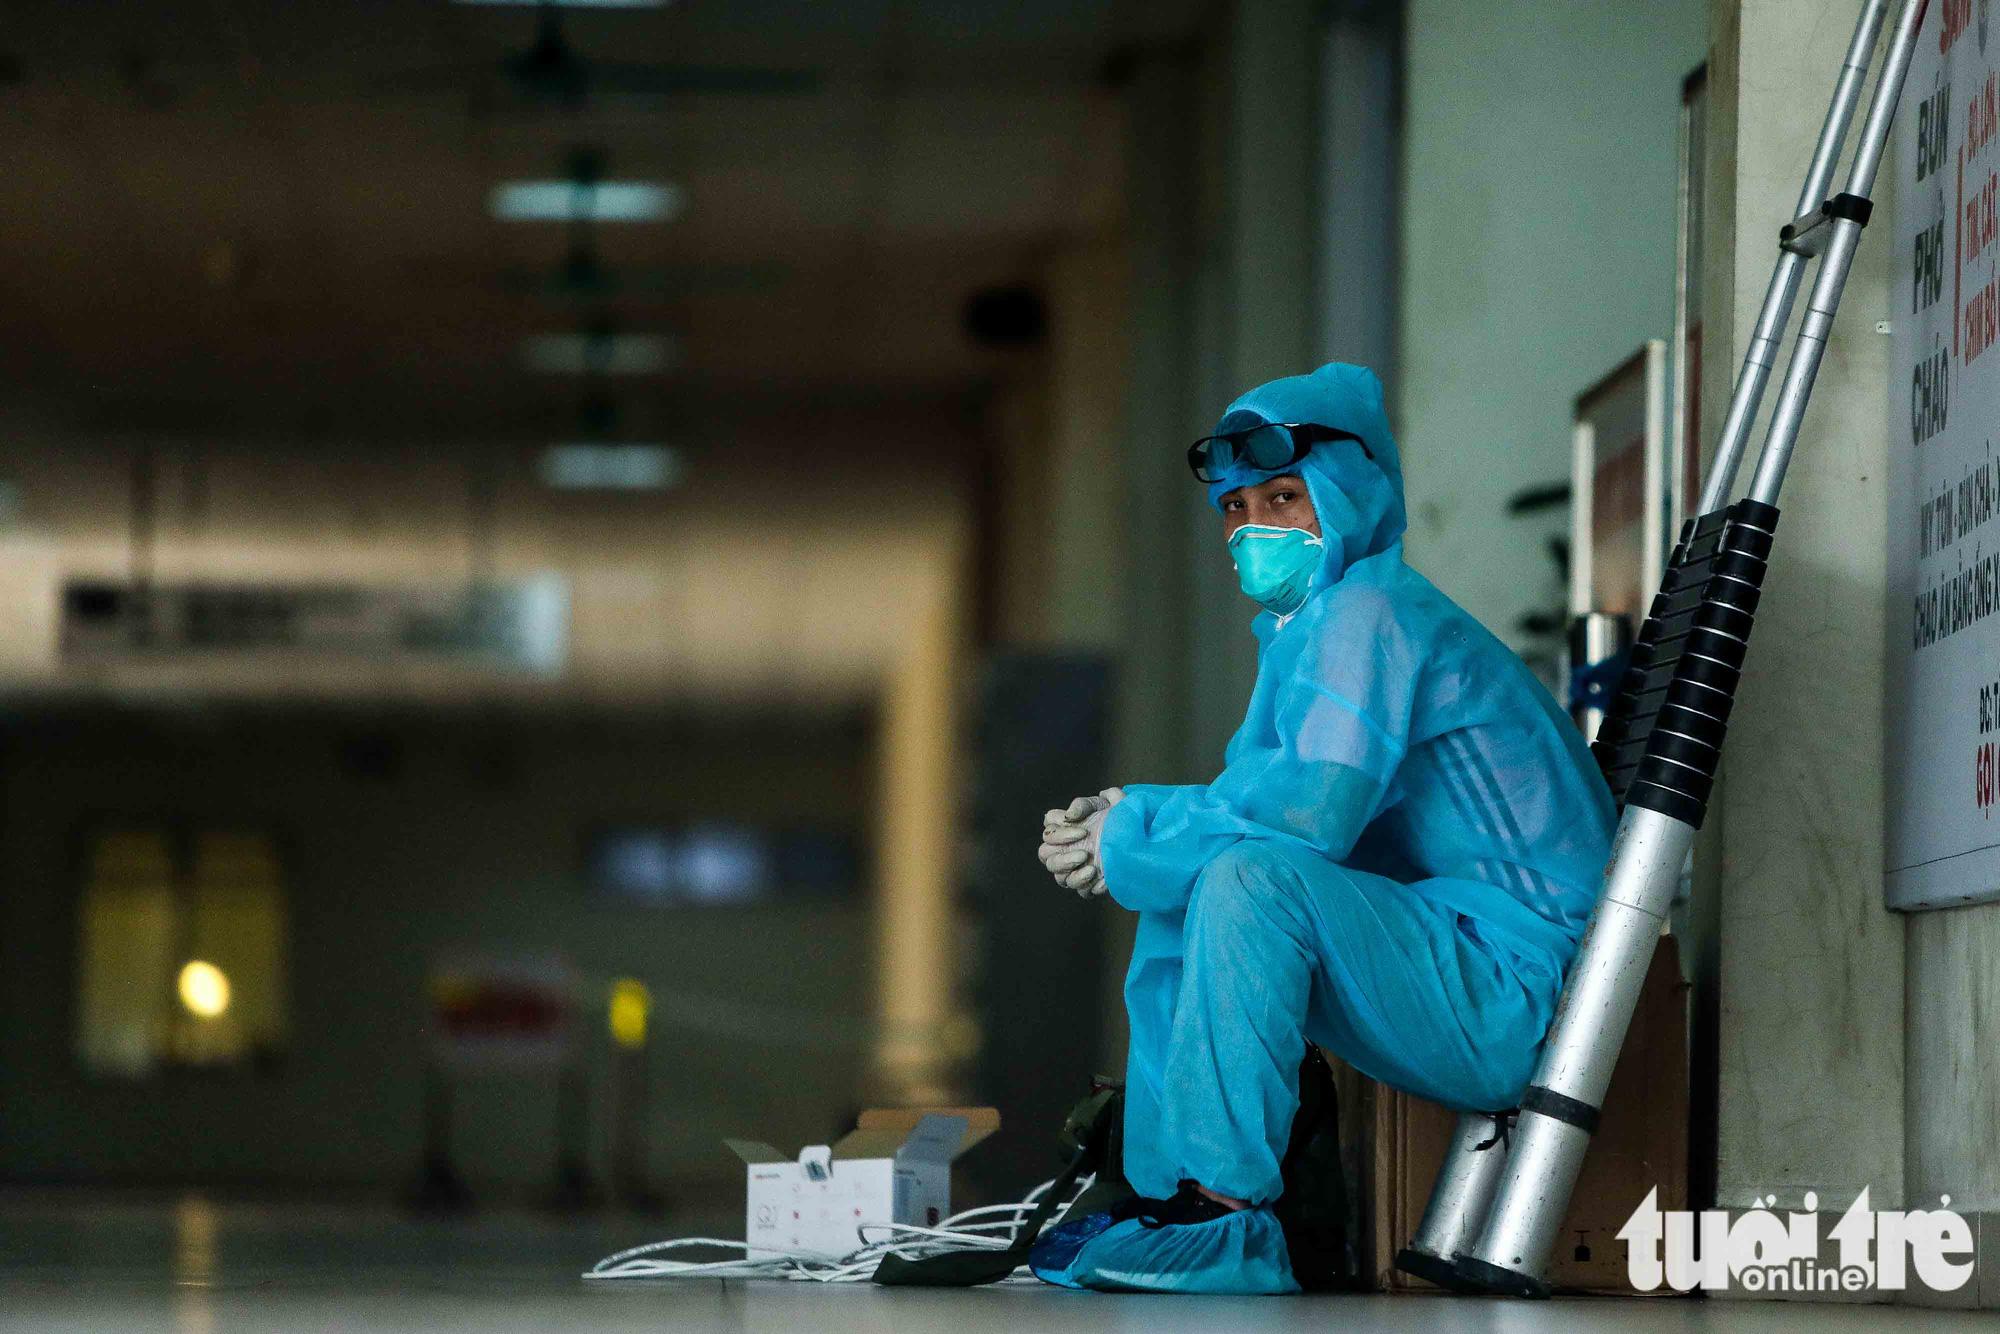 A health worker takes a quick break at the National Hospital for Tropical Diseases in Dong Anh District in Hanoi, Vietnam. Photo: Nguyen Khanh / Tuoi Tre